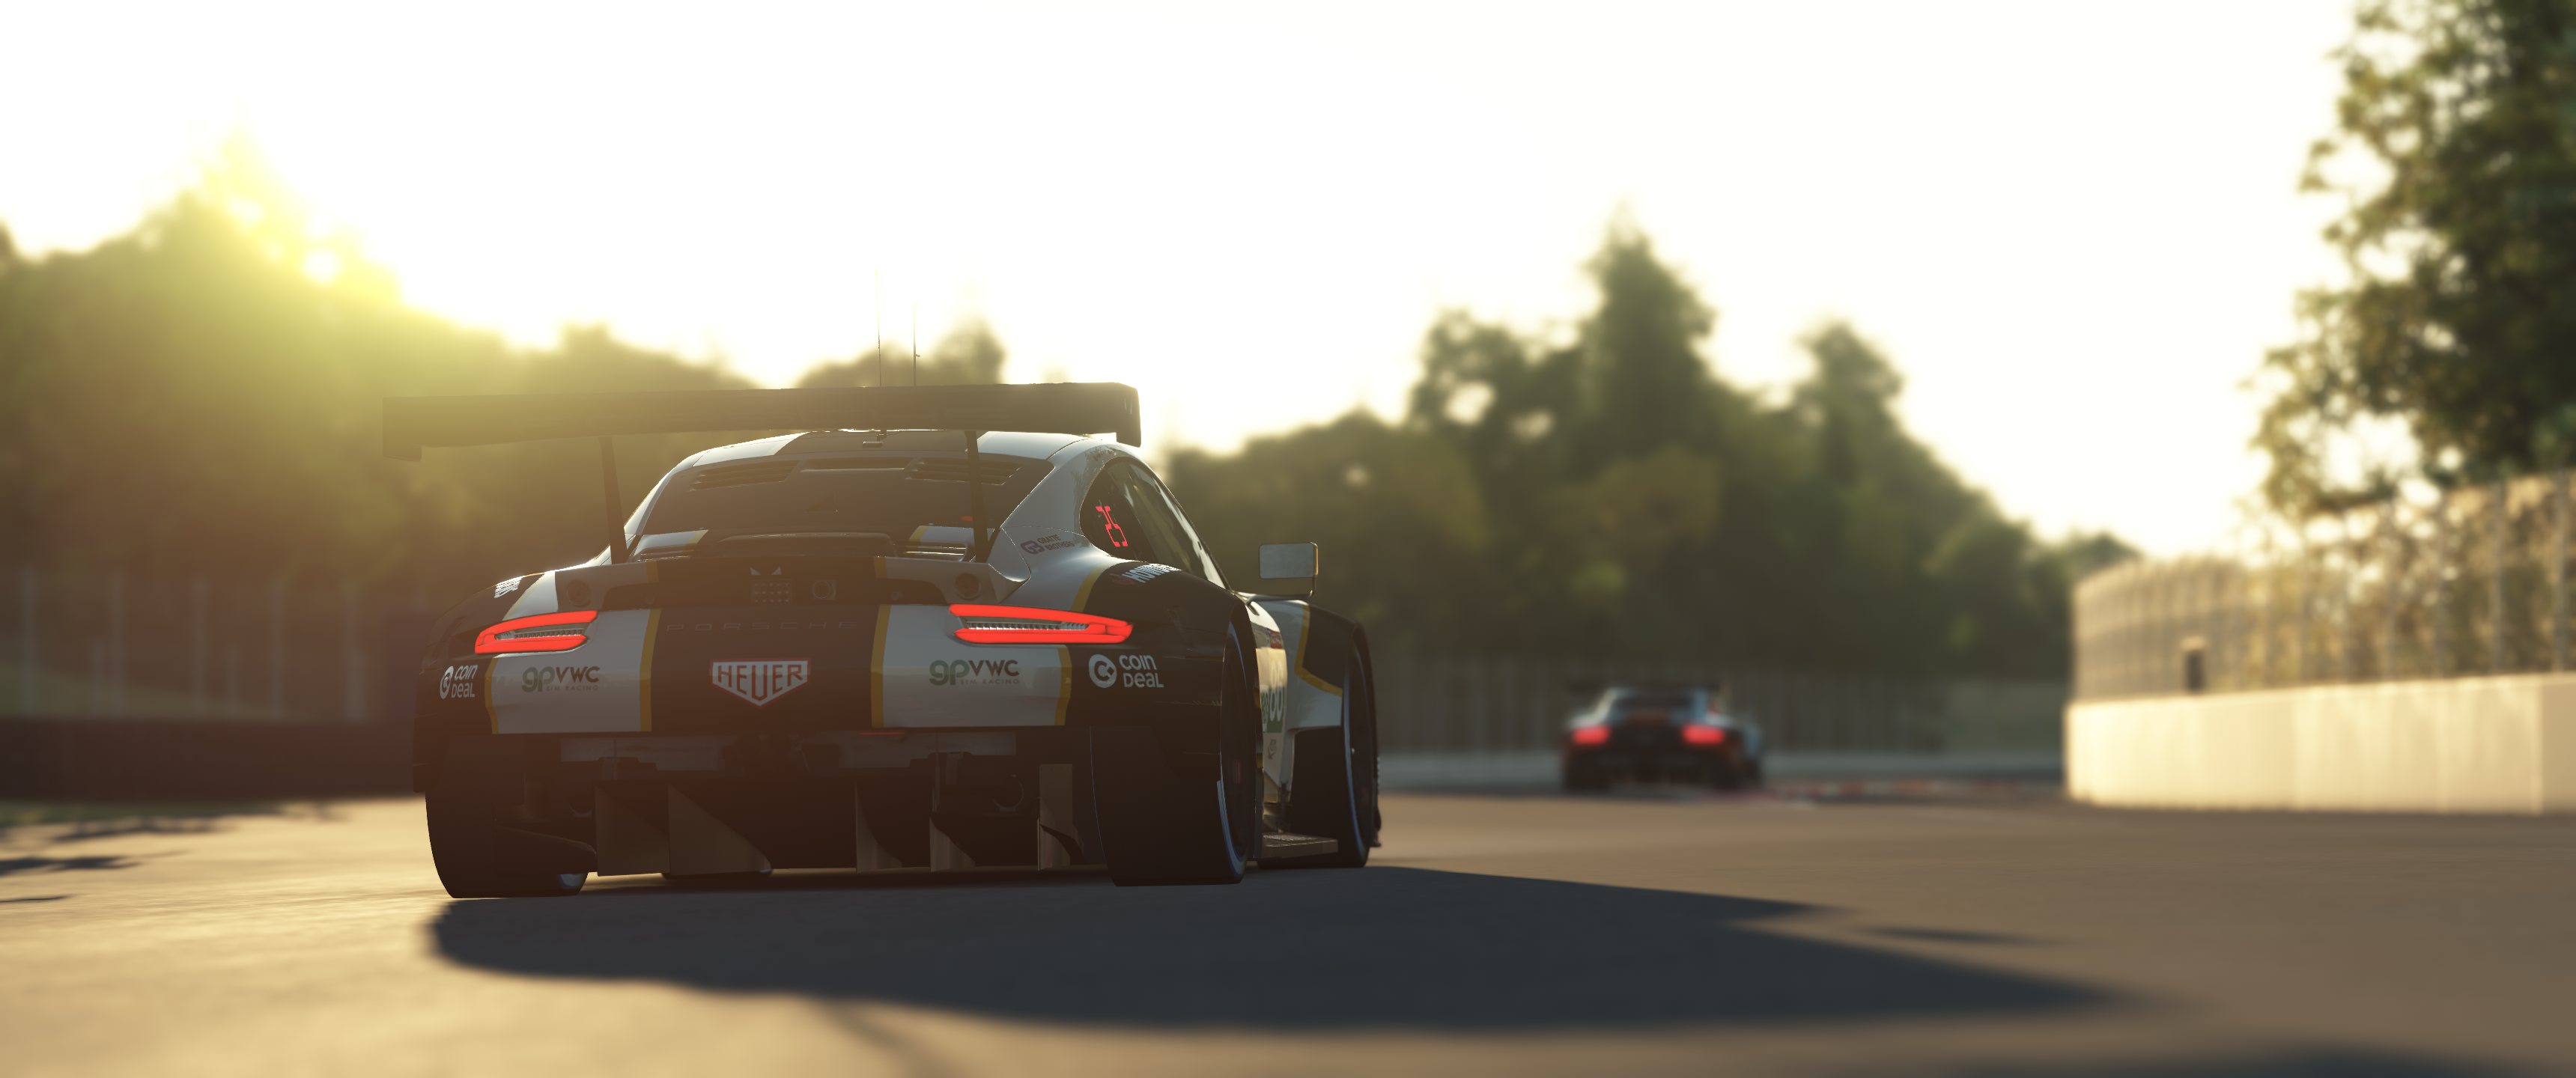 rFactor2 2020-06-30 00-48-30-88.png